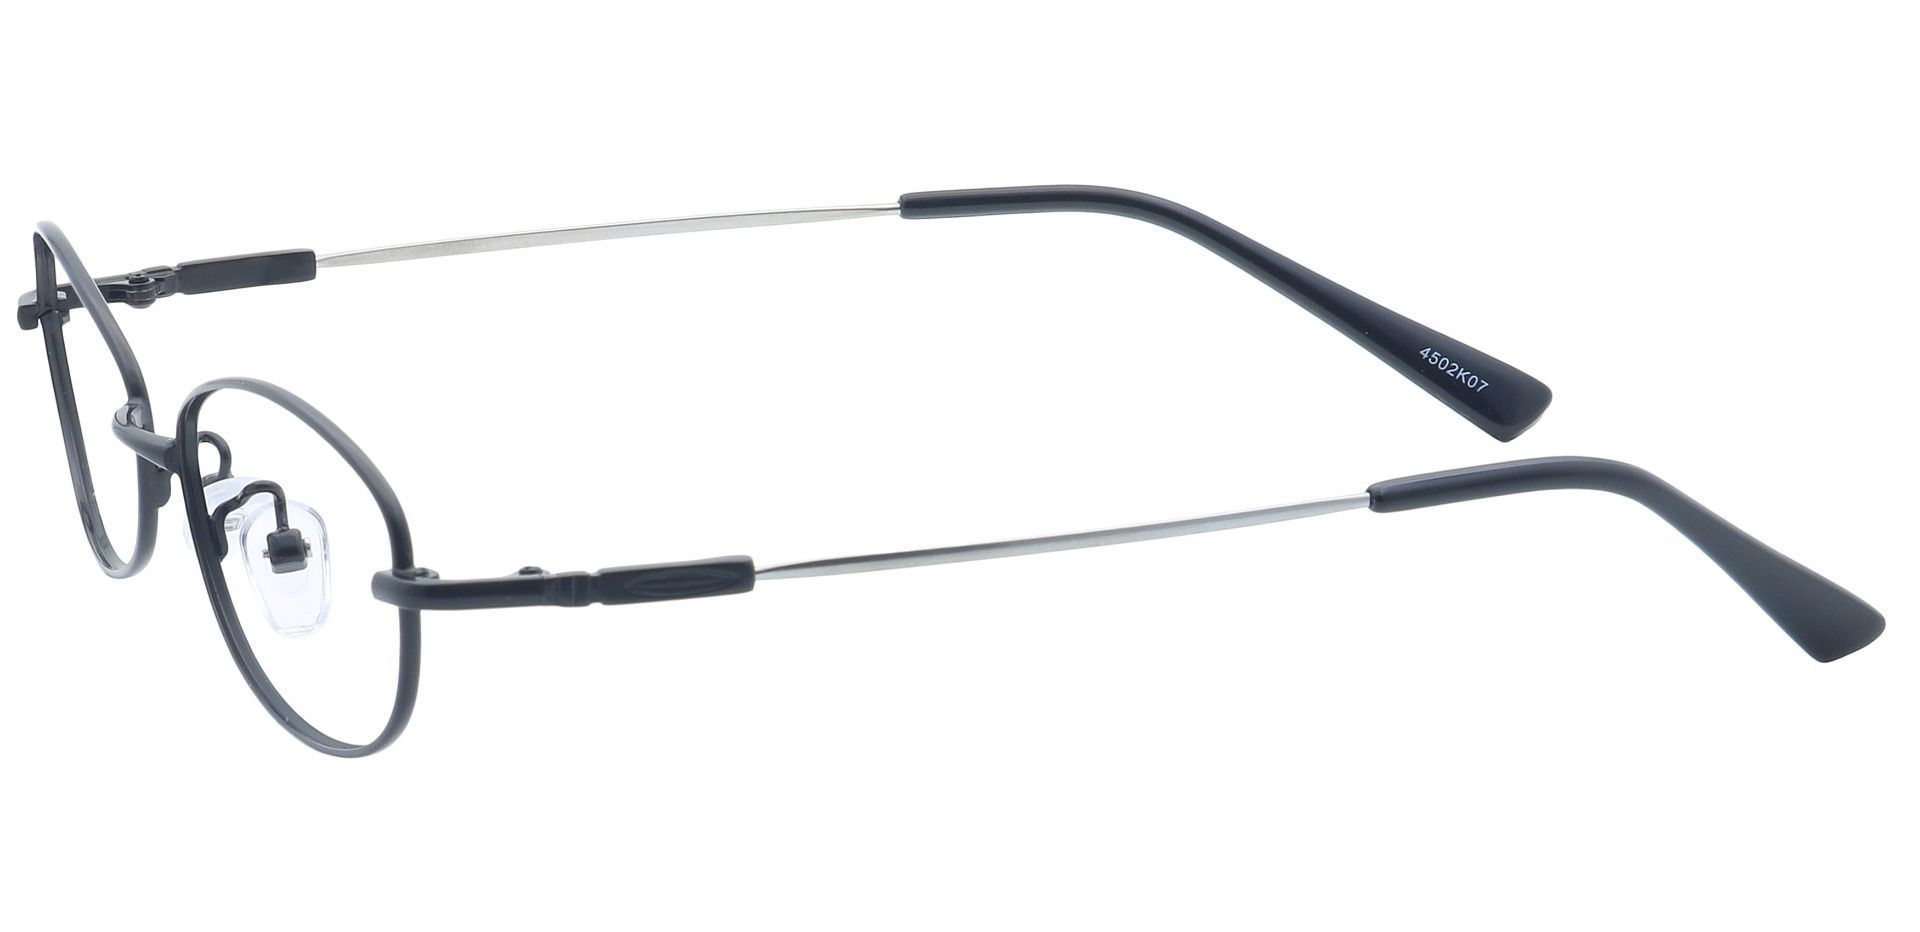 Coronation Oval Non-Rx Glasses - Black